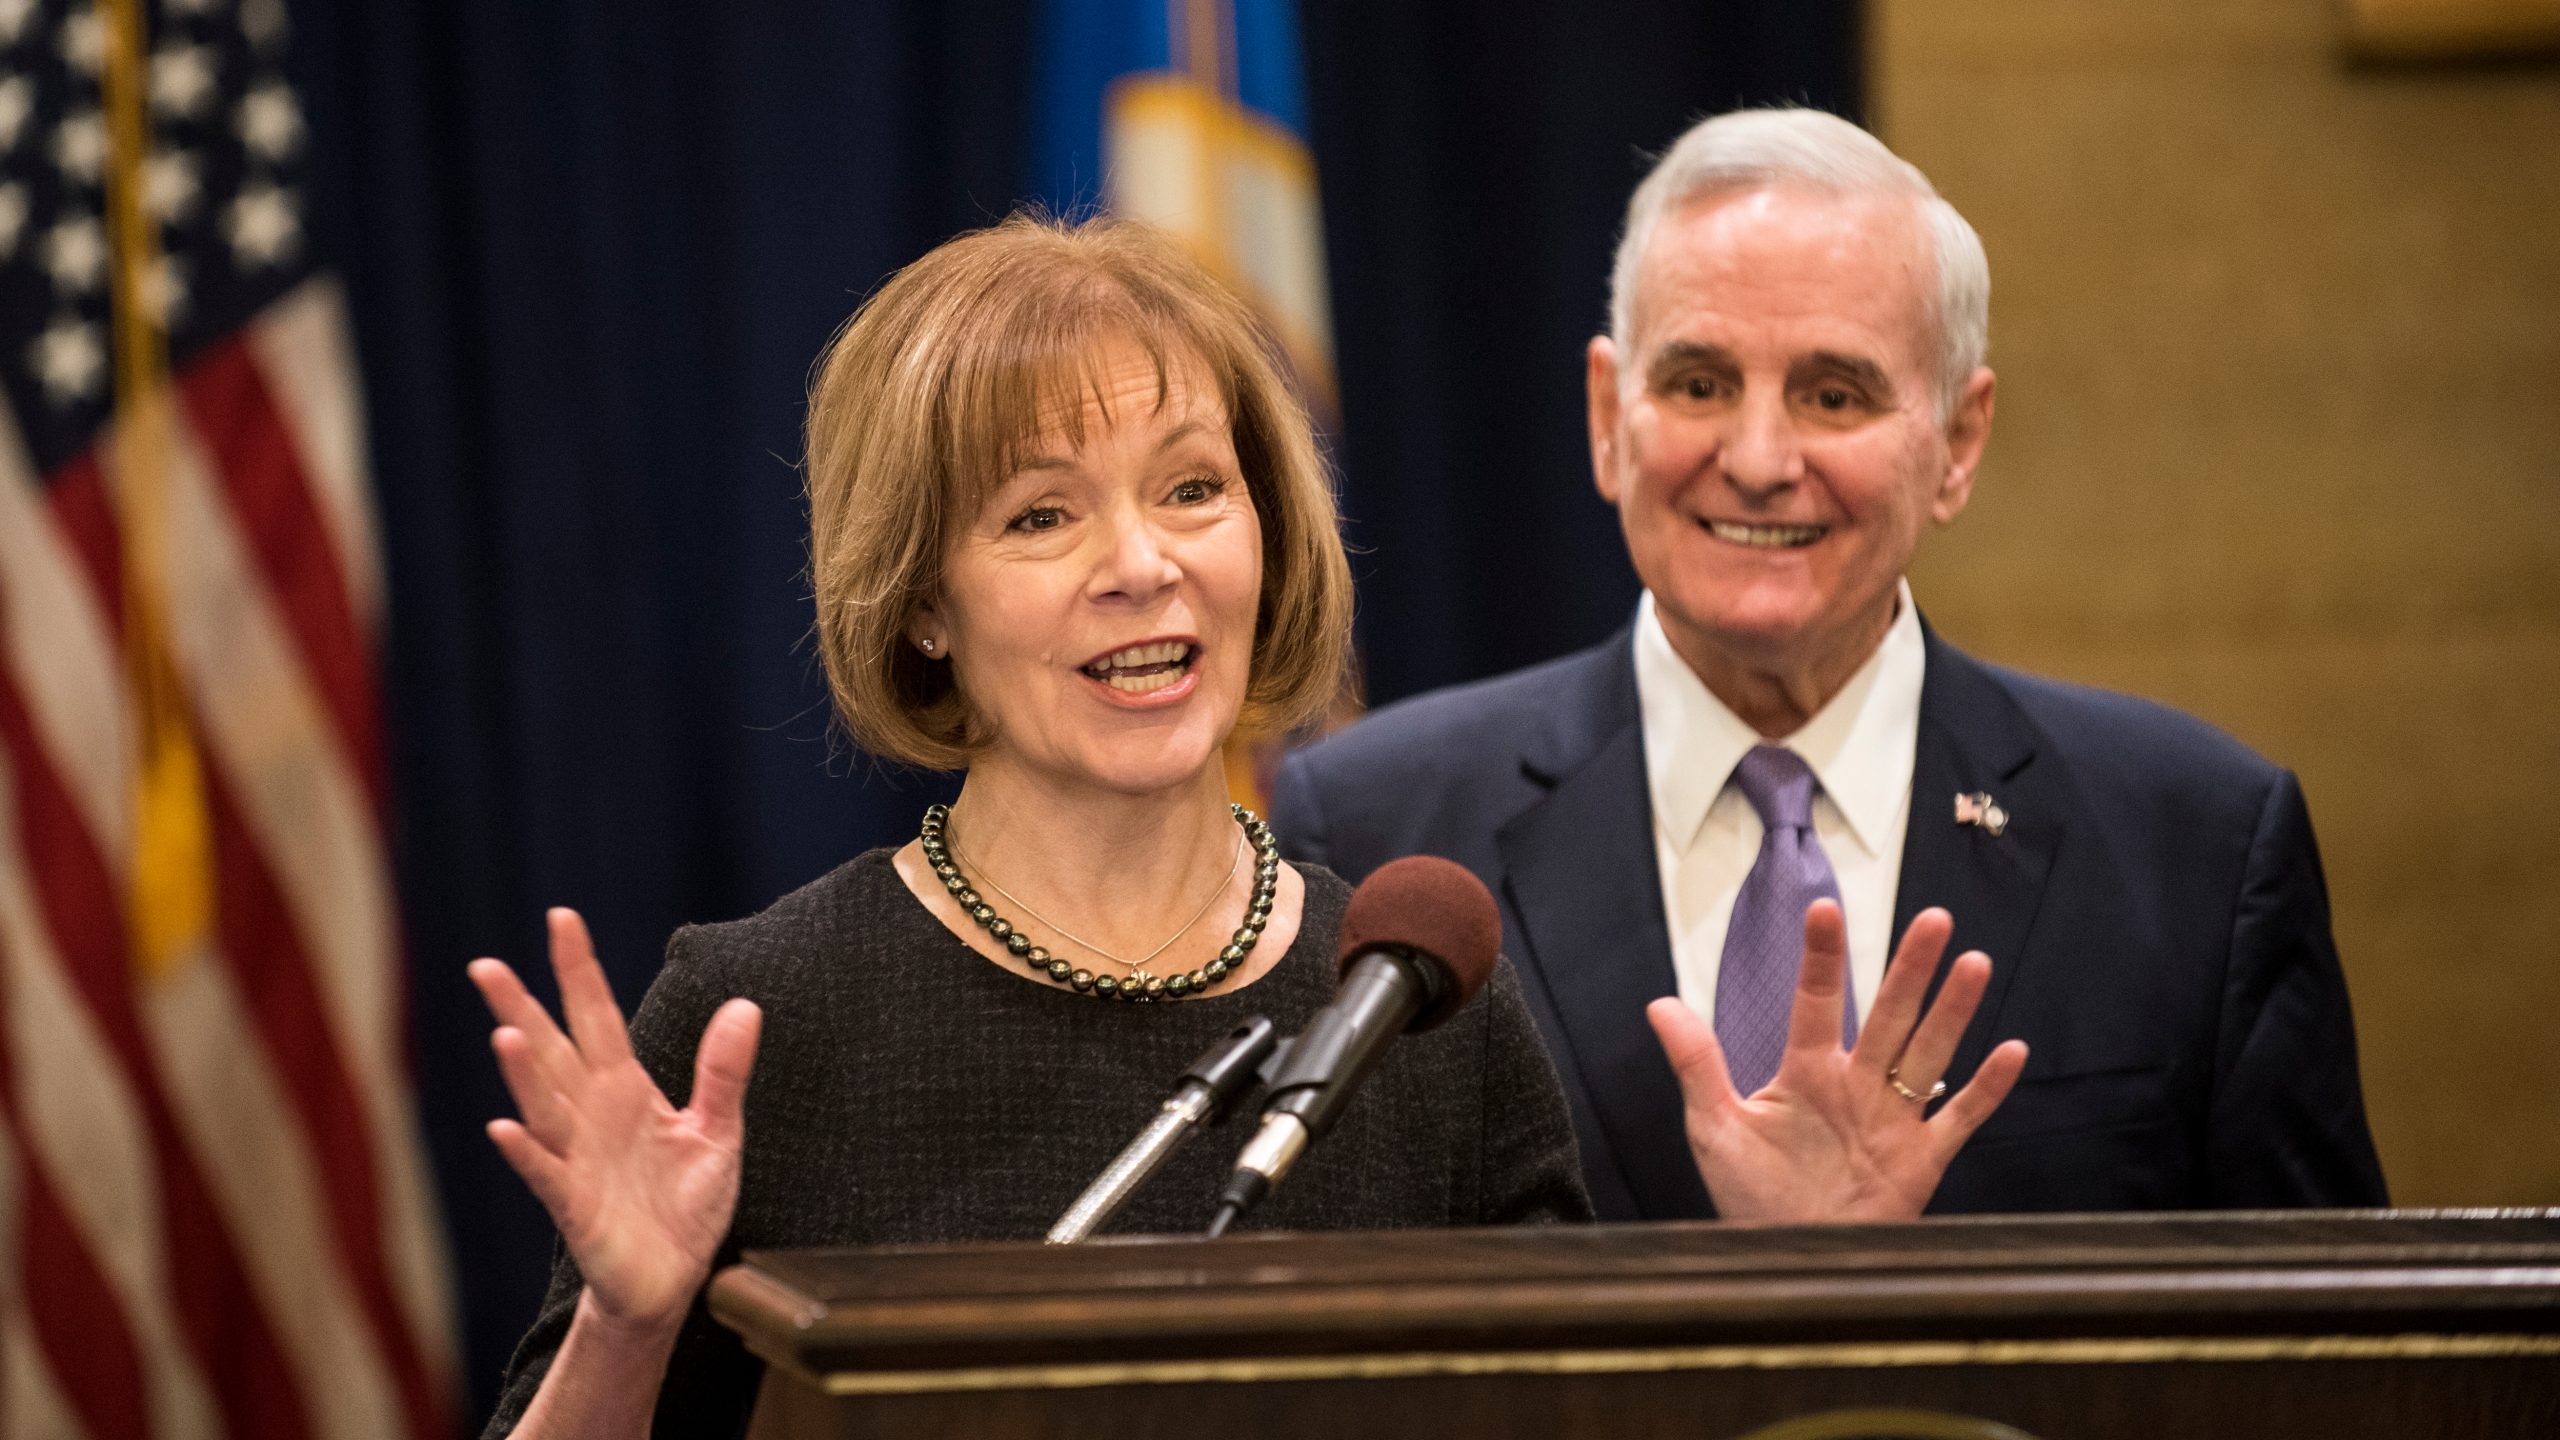 Minnesota Lt. Gov. Tina Smith fields questions after being named the replacement to Sen. Al Franken by Gov. Mark Dayton on Dec. 13, 2017, at the Minnesota State Capitol in St. Paul. (Credit: Stephen Maturen / Getty Images)